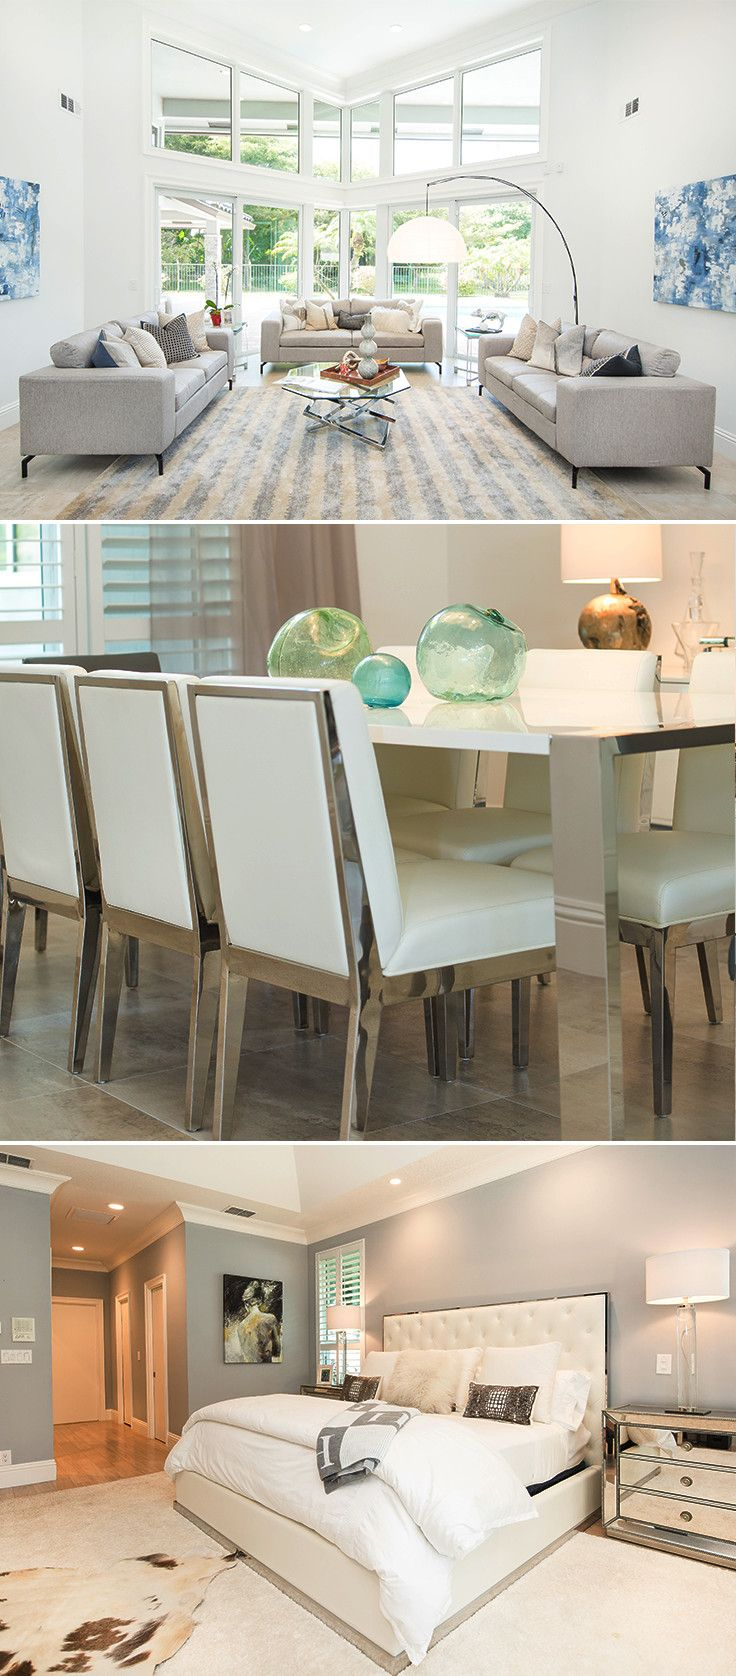 Check out these City Furniture pieces in Jill Zarin's home! With a unique mix of Big Apple sparkle and Florida sunshine, she's created a home that's totally her. Find your unique style today!